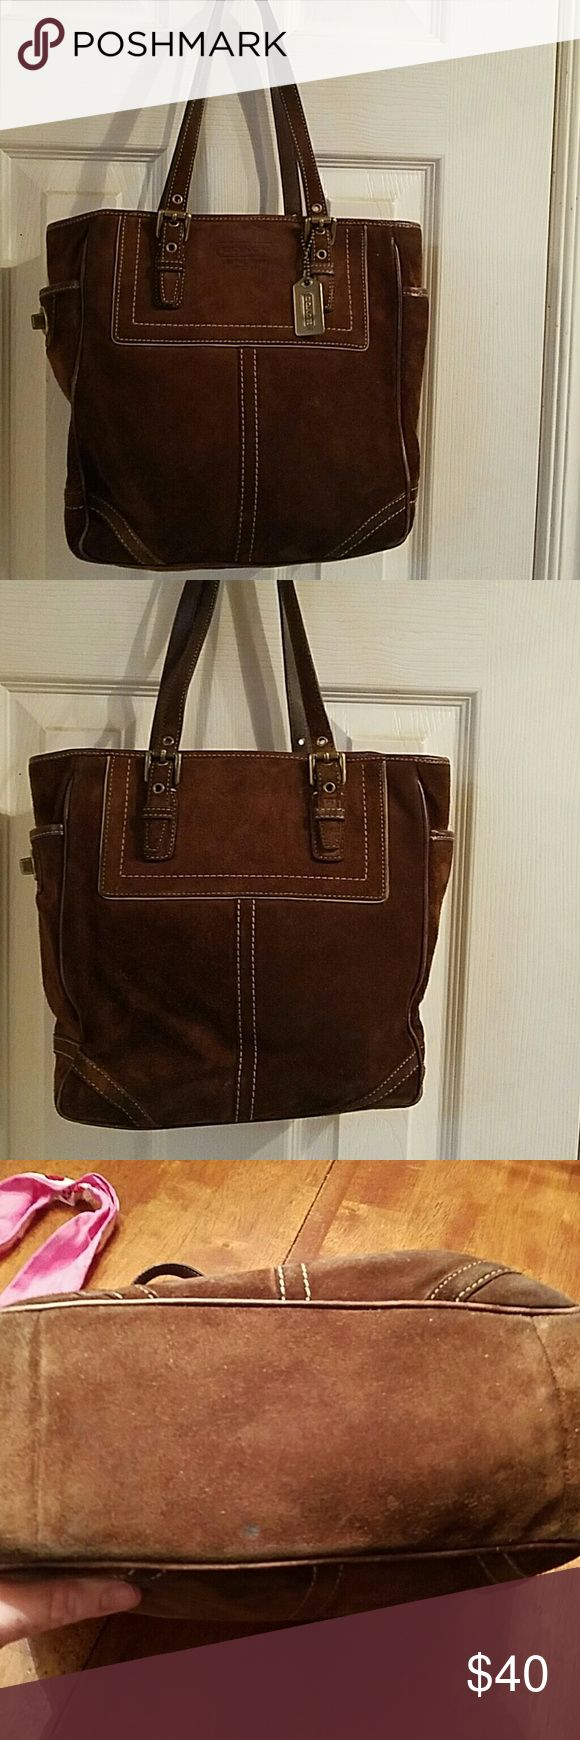 """COACH TOTE,  BROWN SUEDE, GREAT CONDITION Coach Brown Suede Handbag - F10410 12 1/2"""" X 10"""" X 4""""  Beautiful authentic Coach tote. Dark brown suede in excellent condition. Very roomy.  Contains 2 inside slip pockets and 1 zip pocket.  Purse zips from the top.  It has an outside pockets on each side (2) that have twist locks. Coach Bags"""